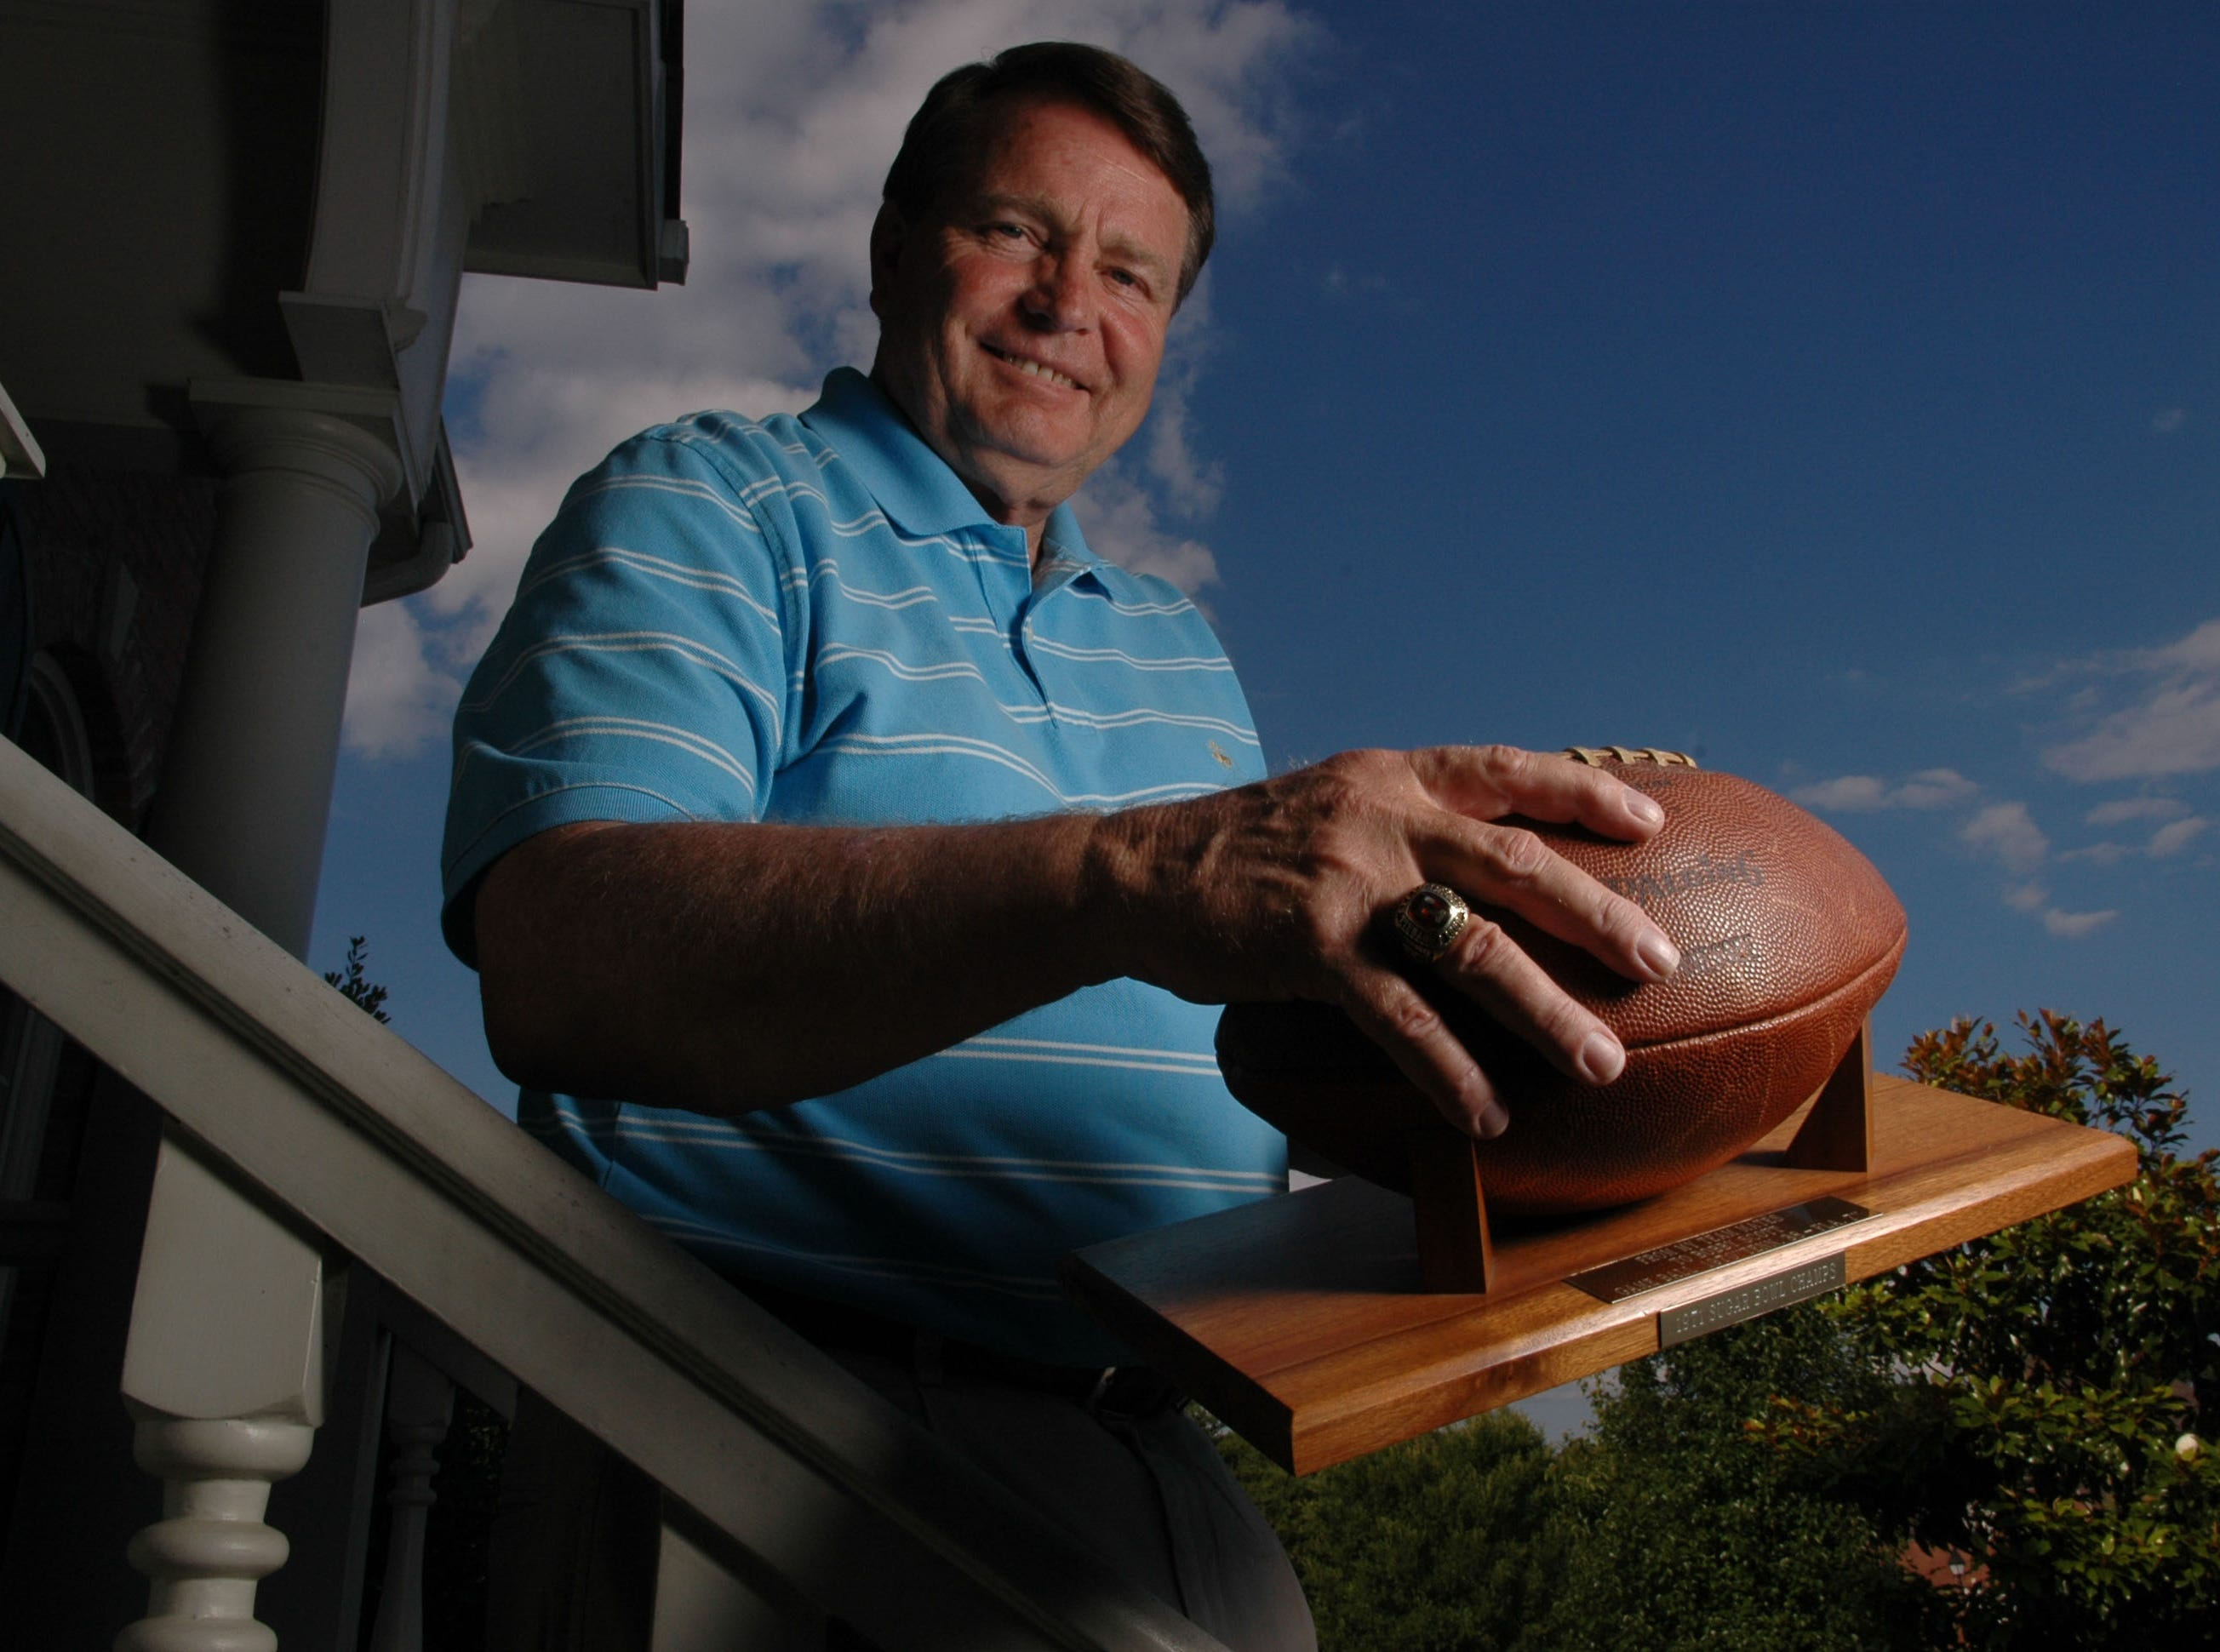 """Bobby Scott, who played quarterback at the University of Tennessee and in the NFL holds the game ball from UT""""s 38-7 victory over Florida in Knoxville in 1971 while posing for a photo on his front porch in Knoxville.  On his hand he wears his 1969 SEC Championship ring."""